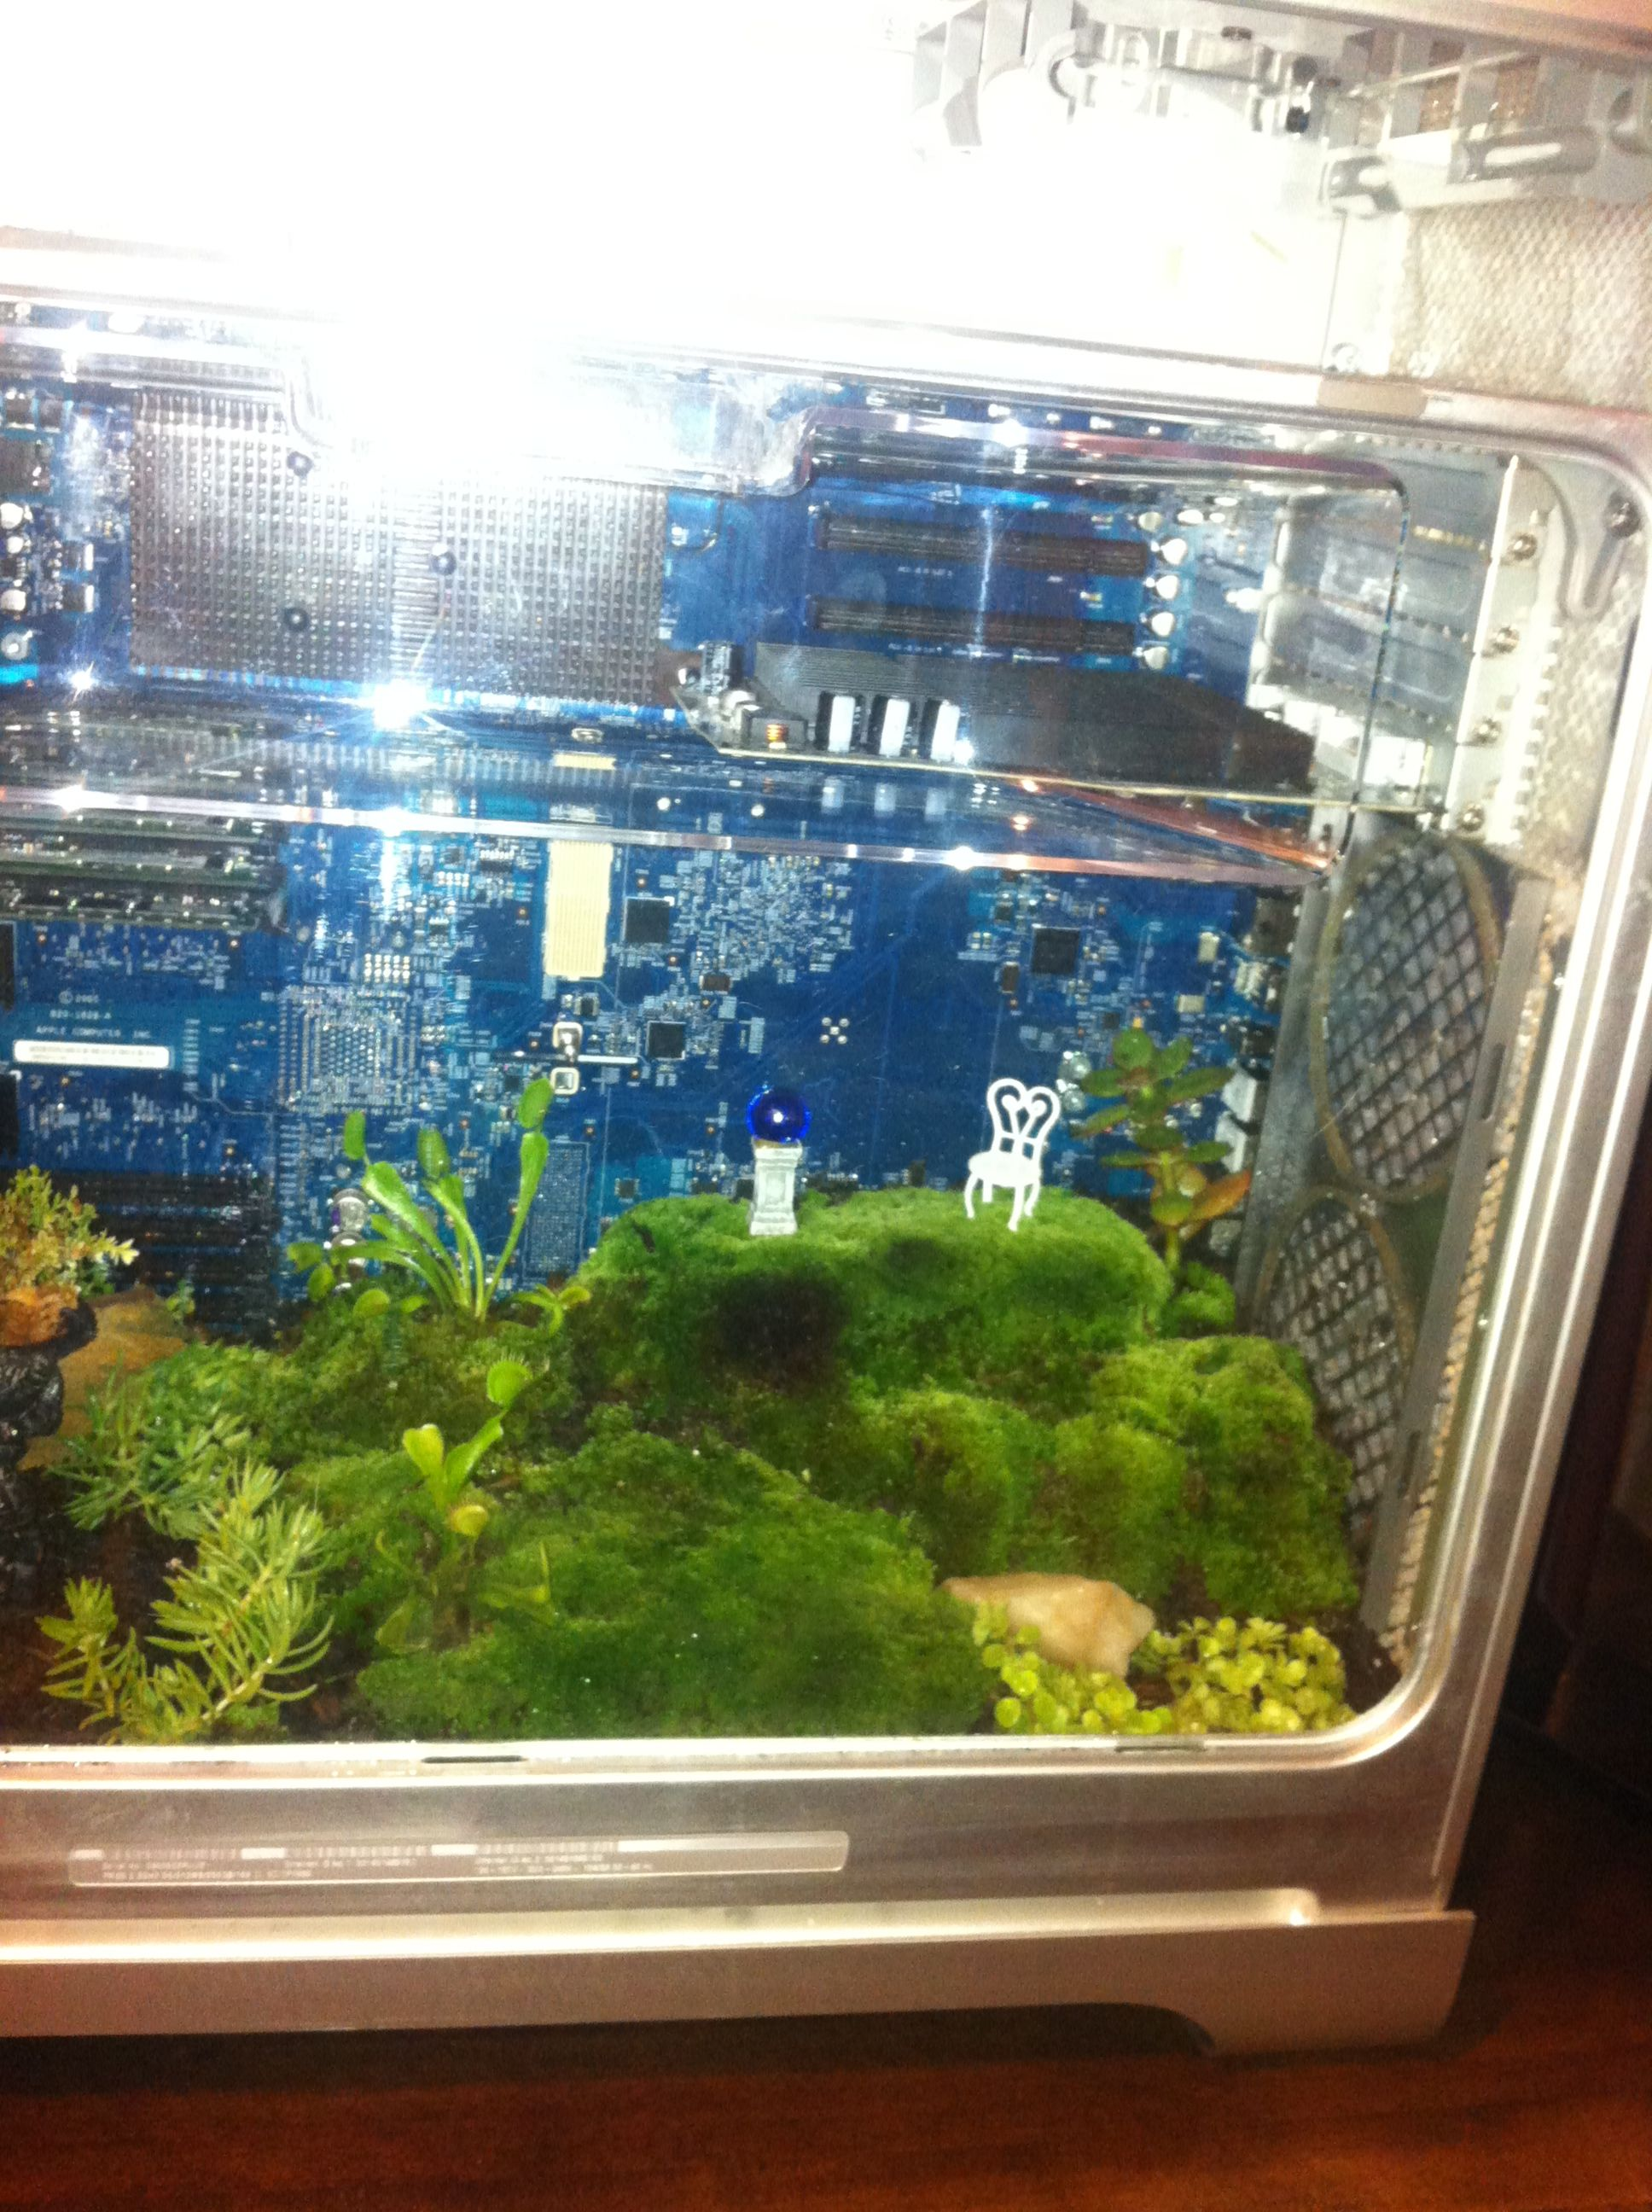 Turn An Old Mac puter Into A Terrarium With Mini Garden Inside